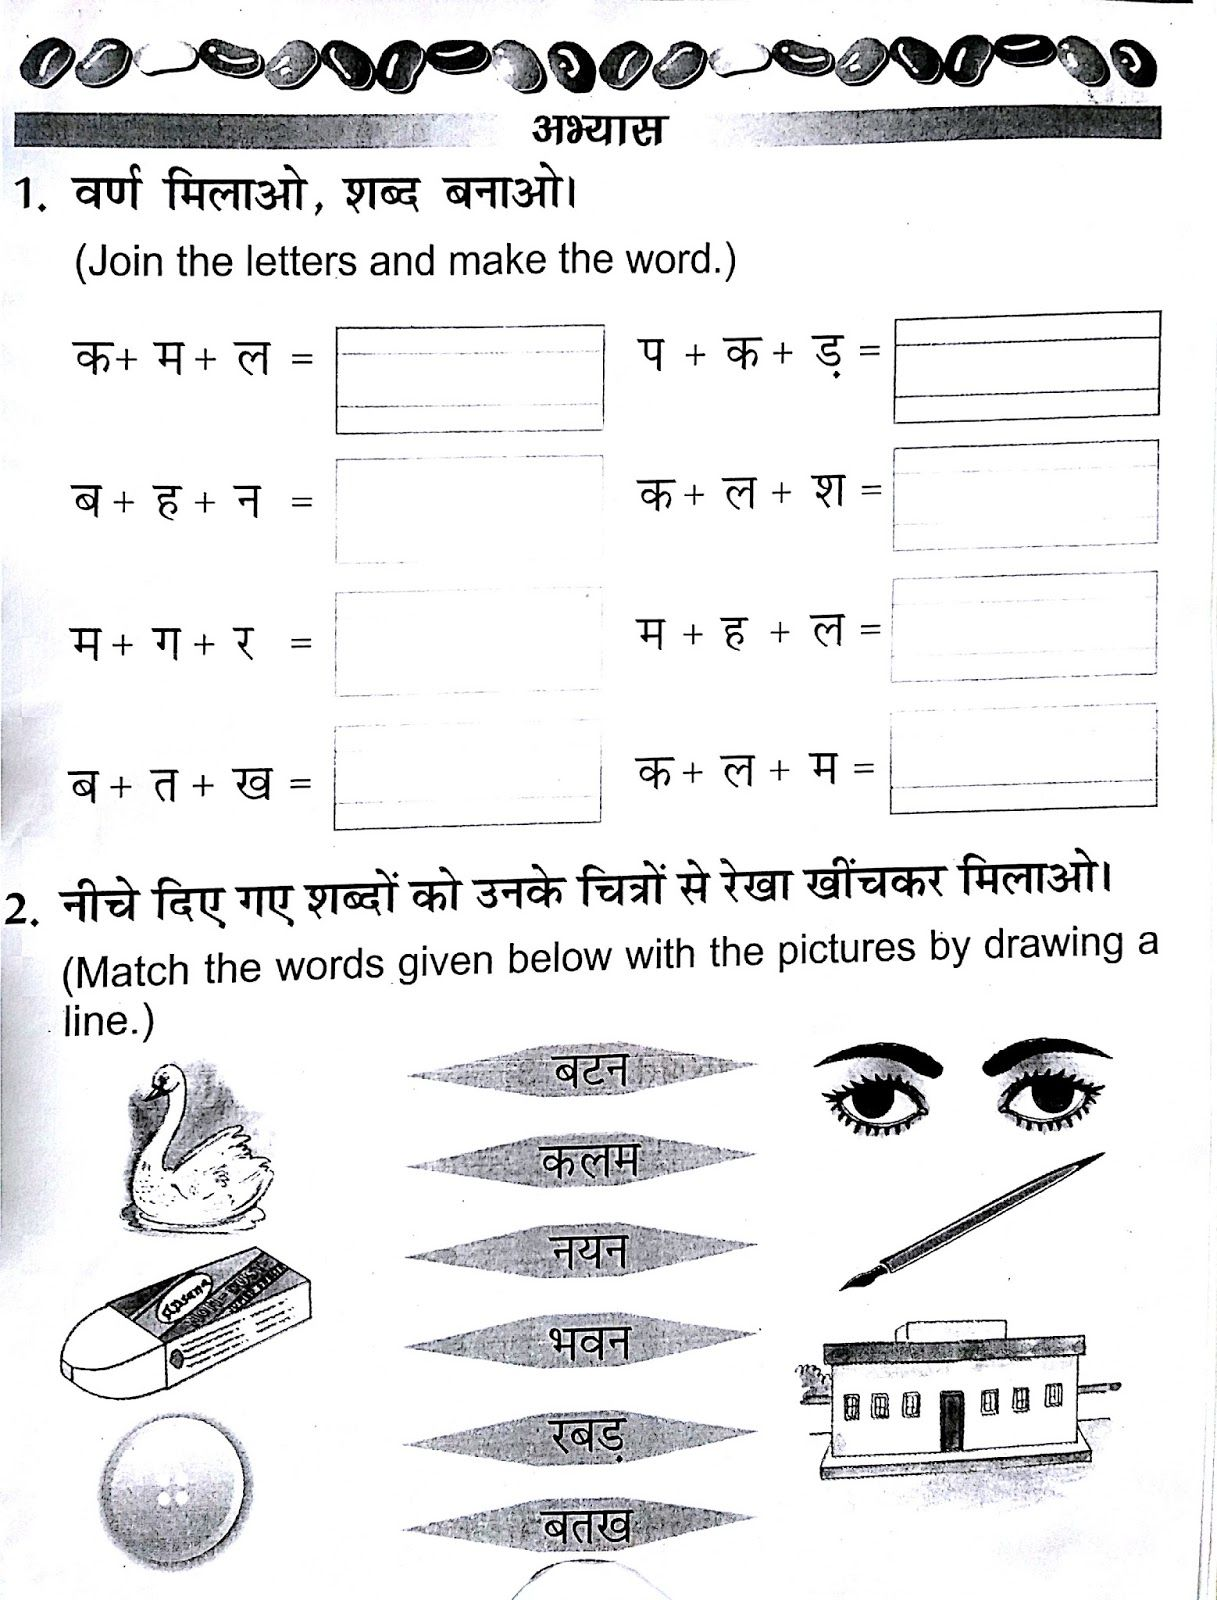 Matra Work Sheets for Classes 3, 4, 5 and 6 With SOLUTIONS